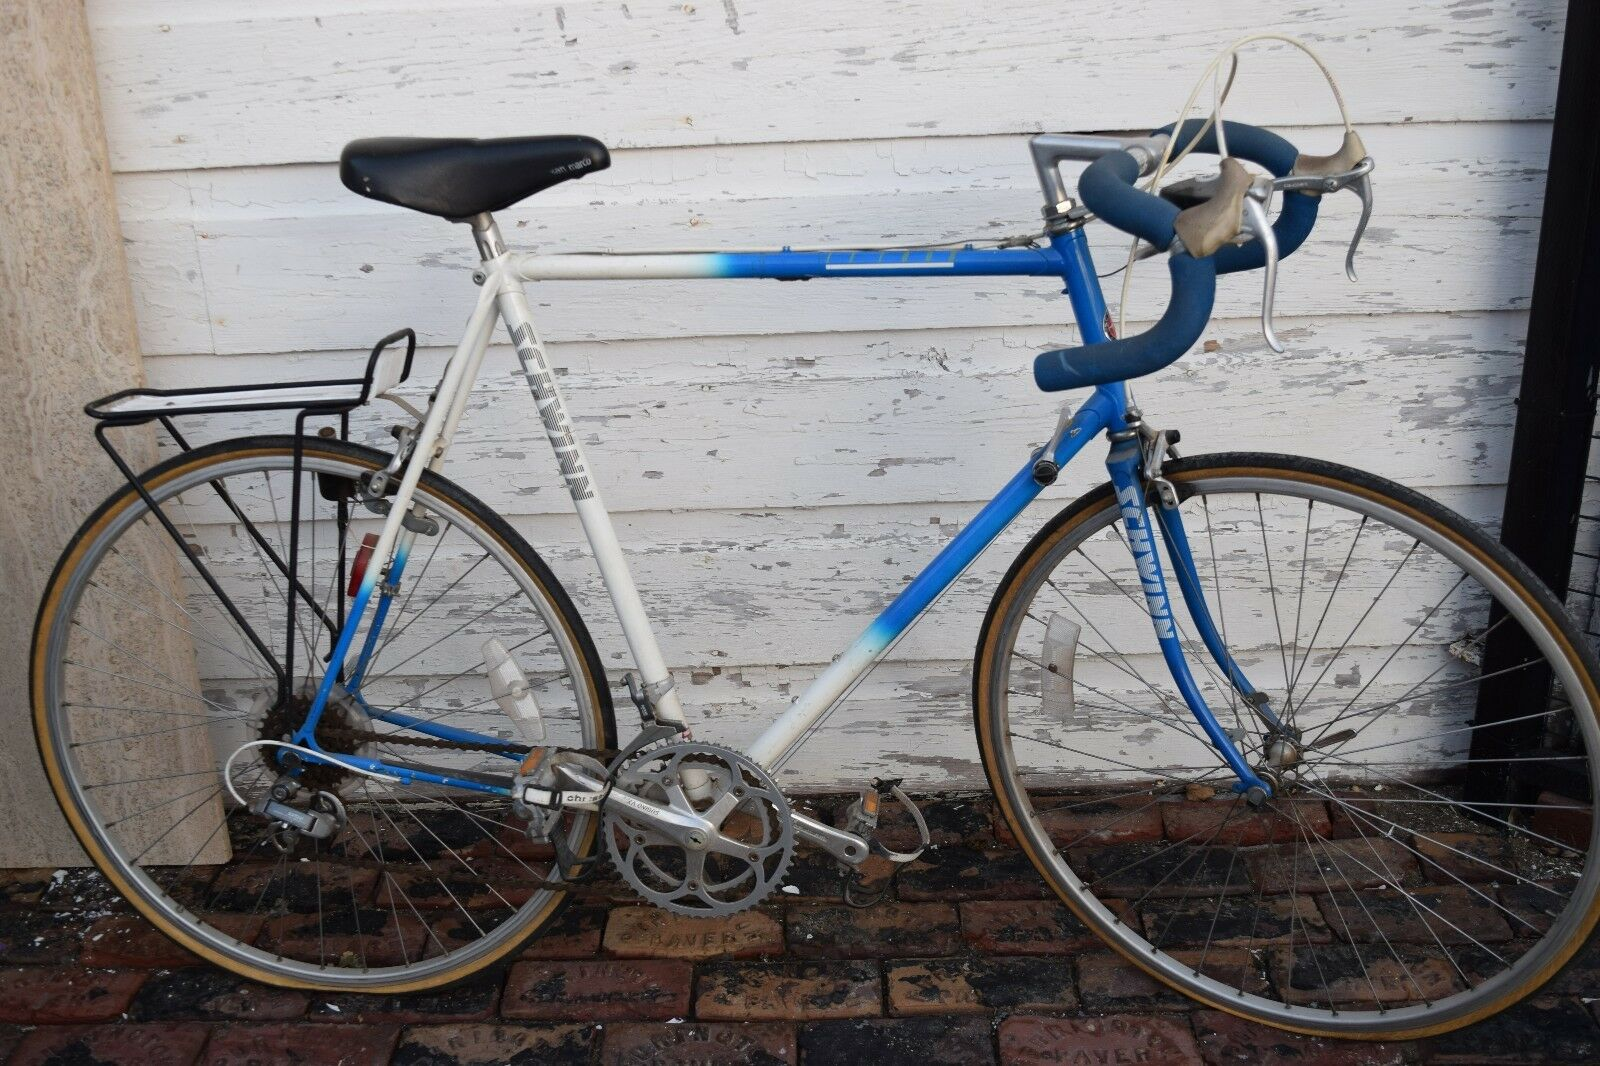 Vintage 1988 Schwinn Le TOUR 10 Speed Road Bike, Large Size, Original Condition